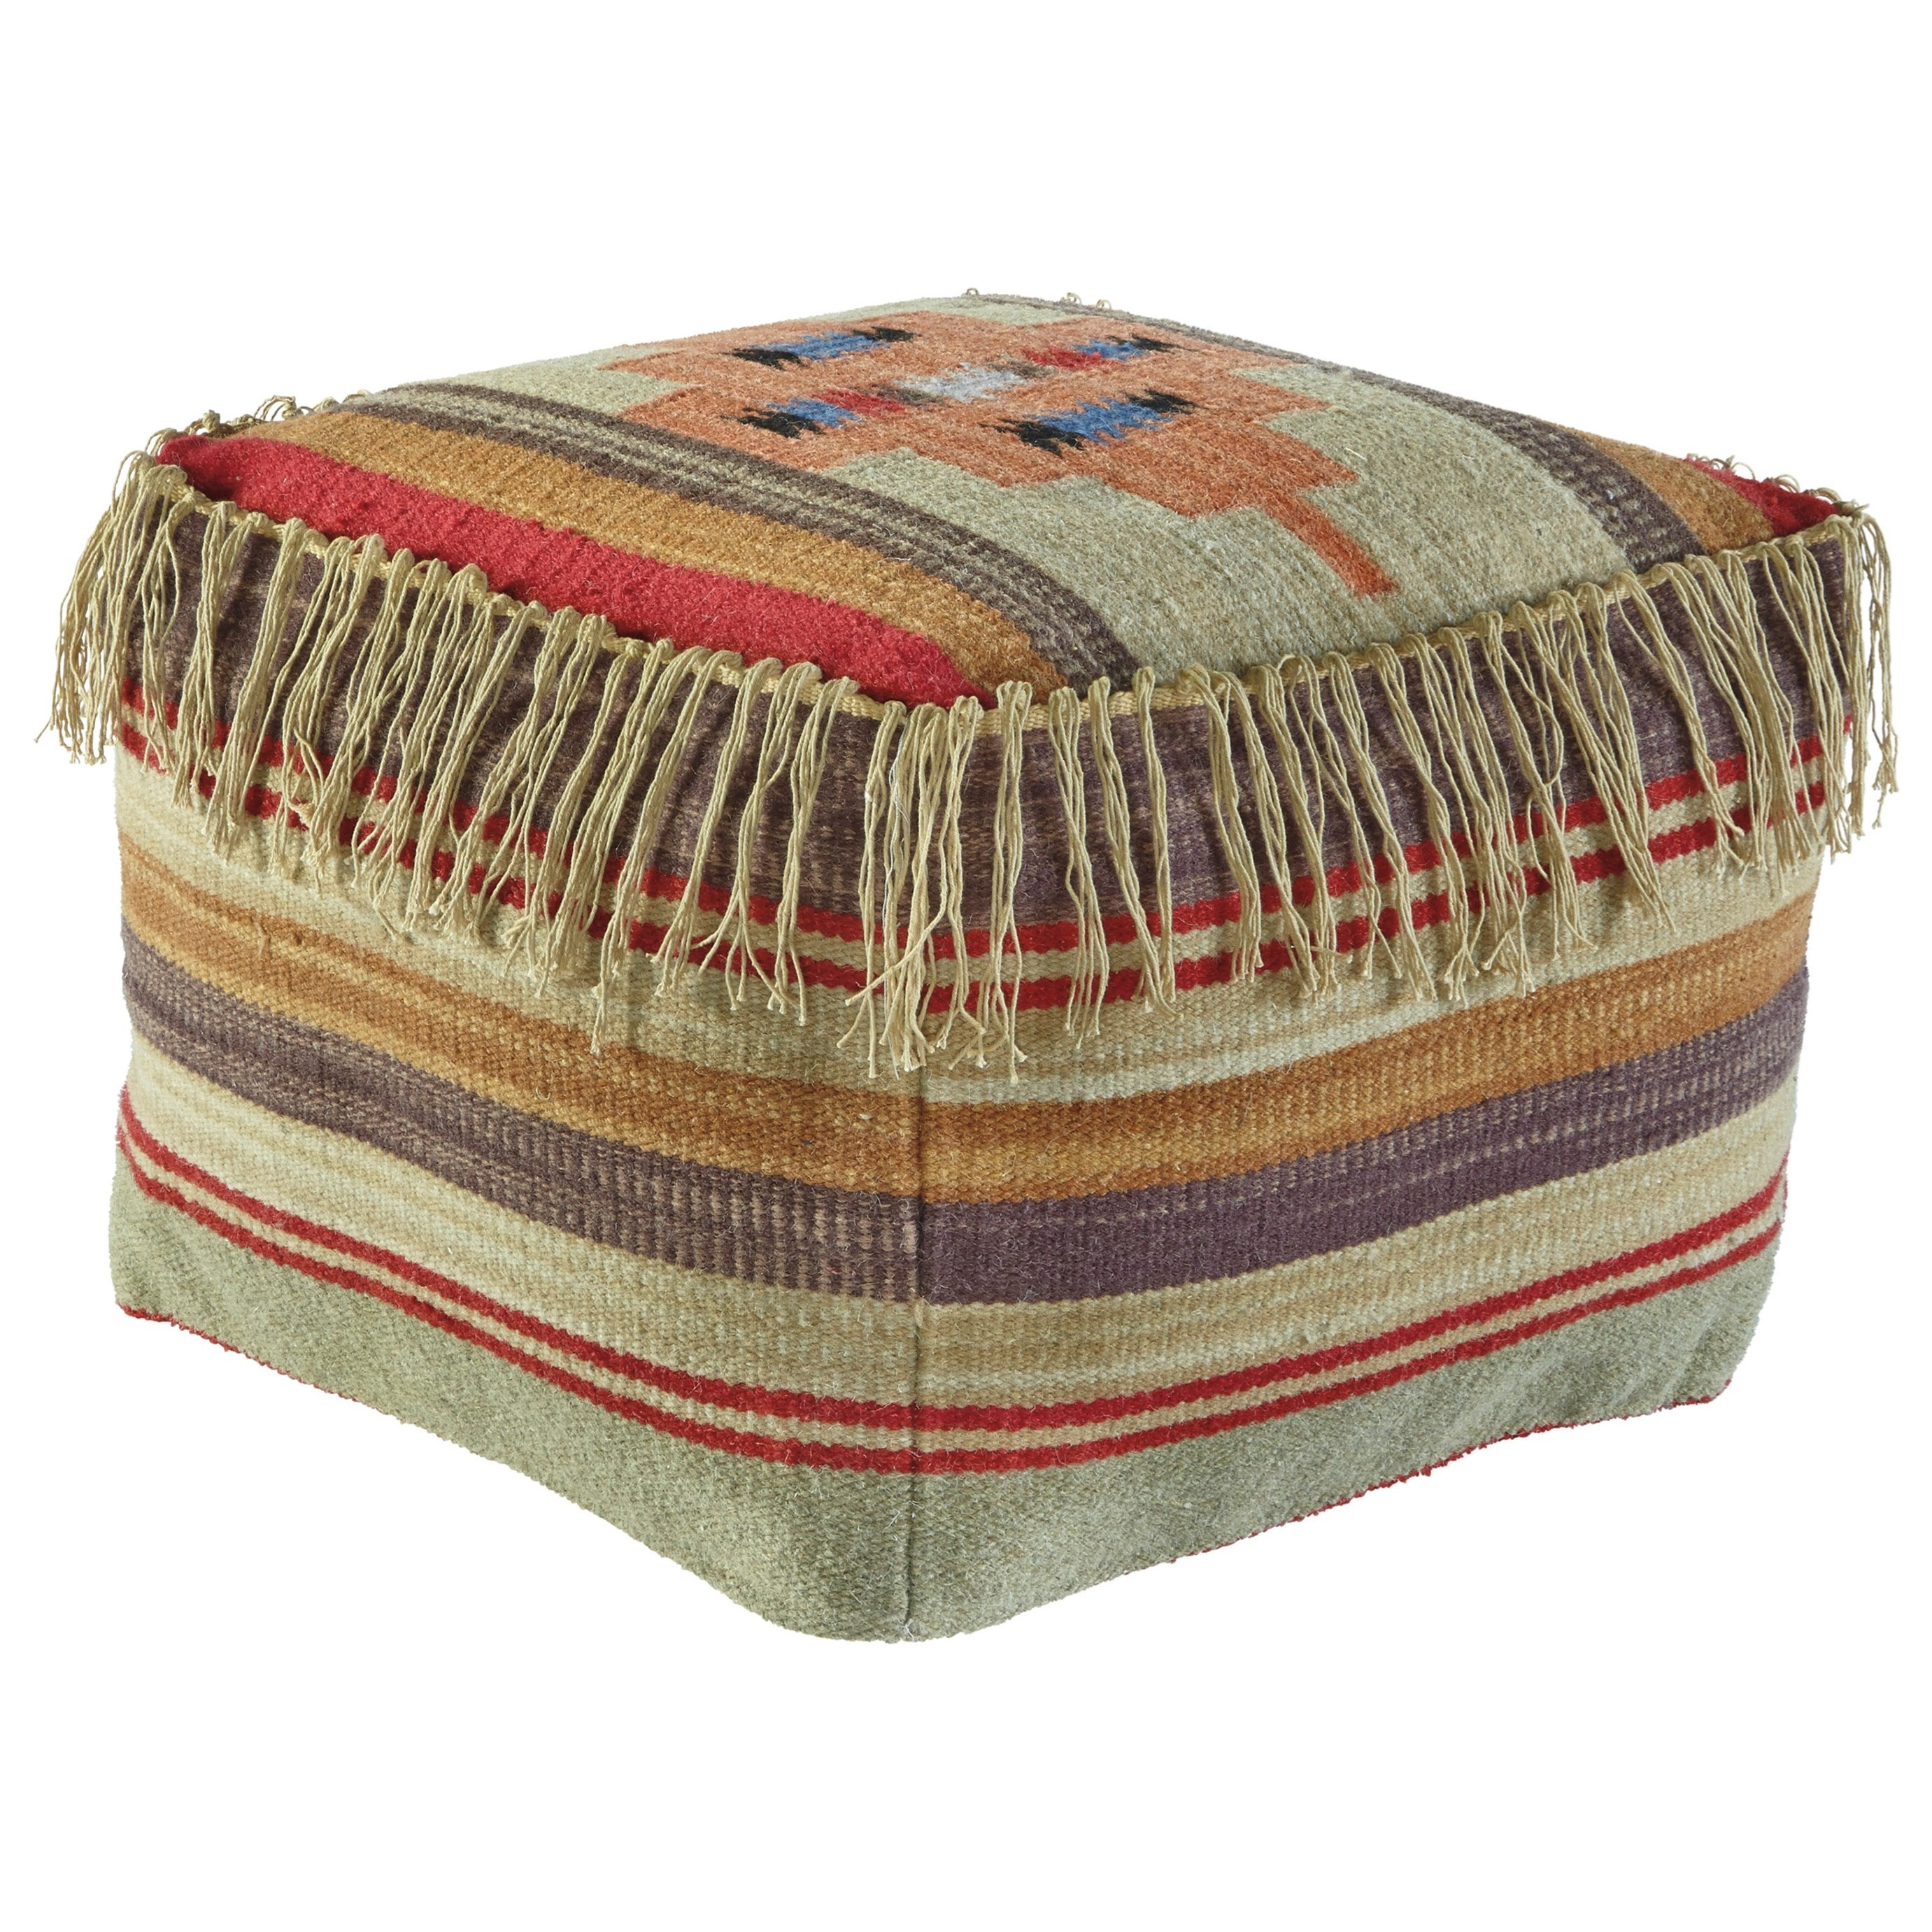 Signature Design by Ashley Poufs Bentlee - Multi Pouf - Item Number: A1000282